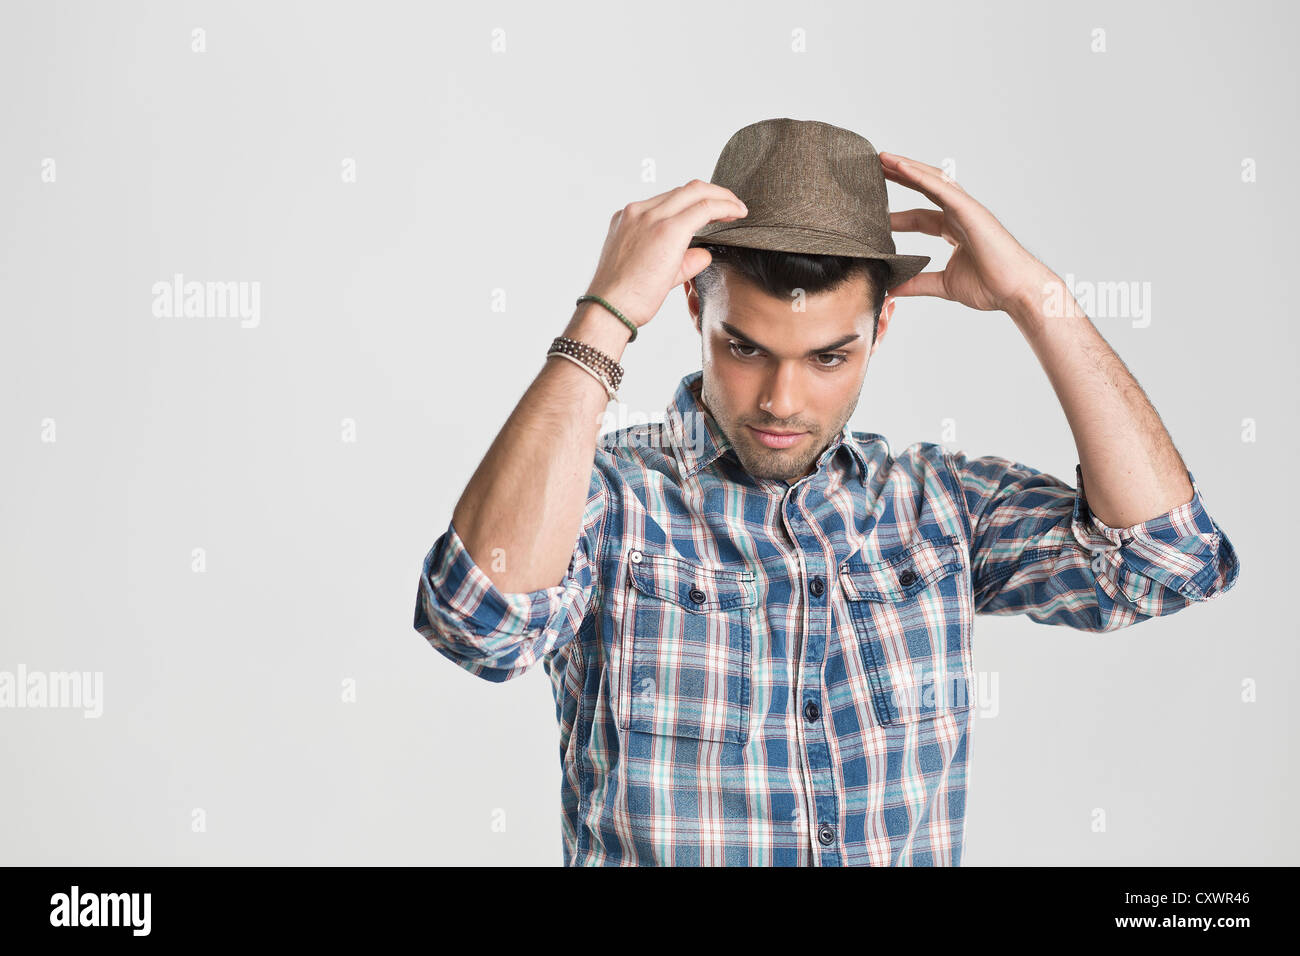 Man trying on hat - Stock Image